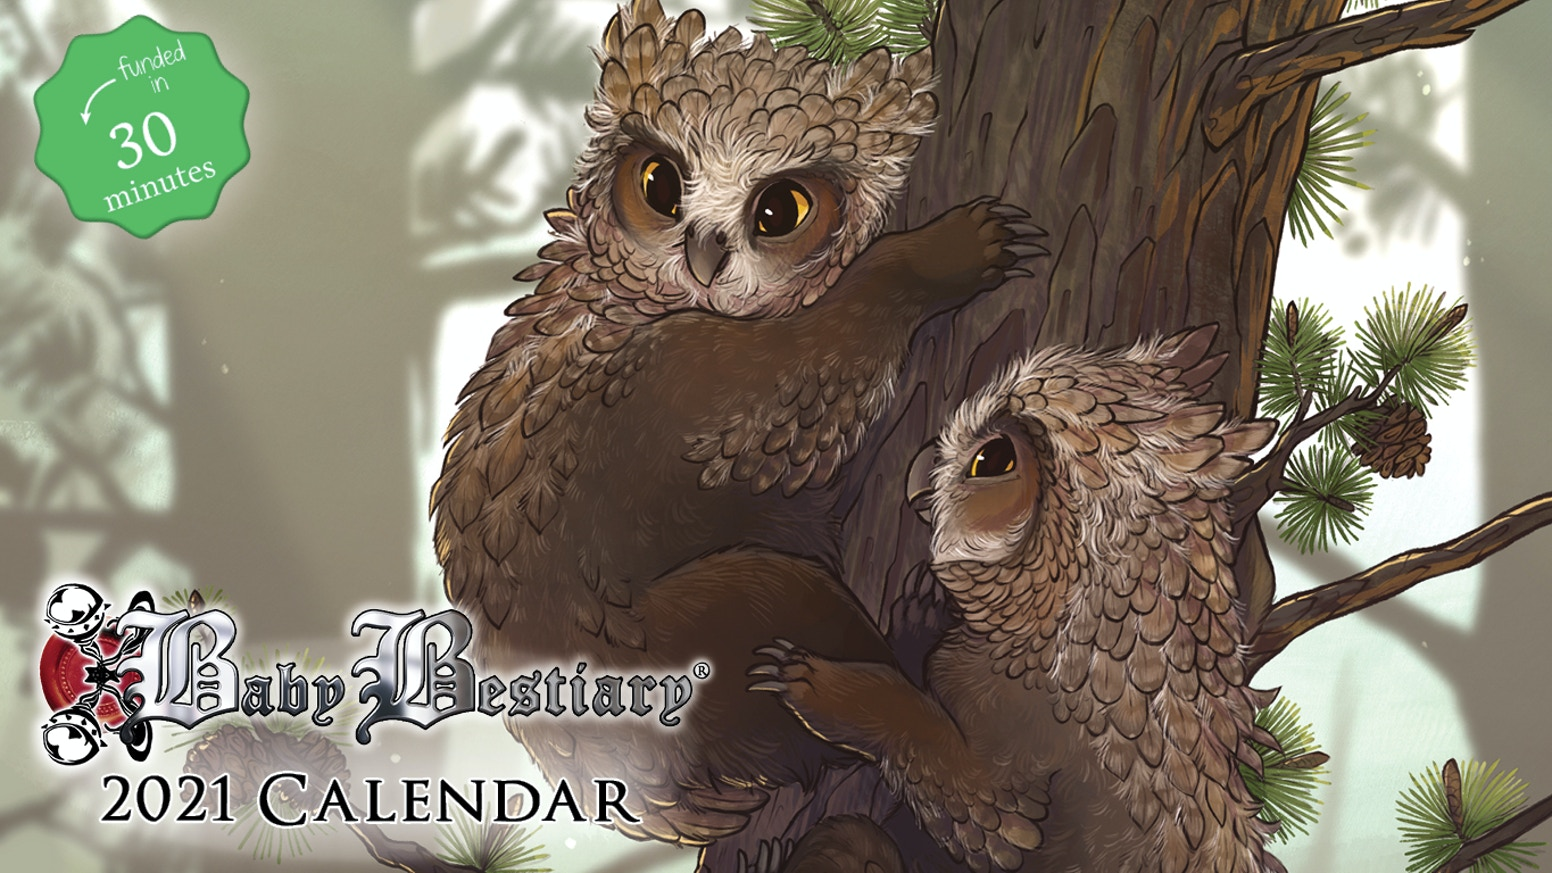 Explore the adorable with the adorable 2021 Baby Bestiary Calendar, illustrated by KM Steere!